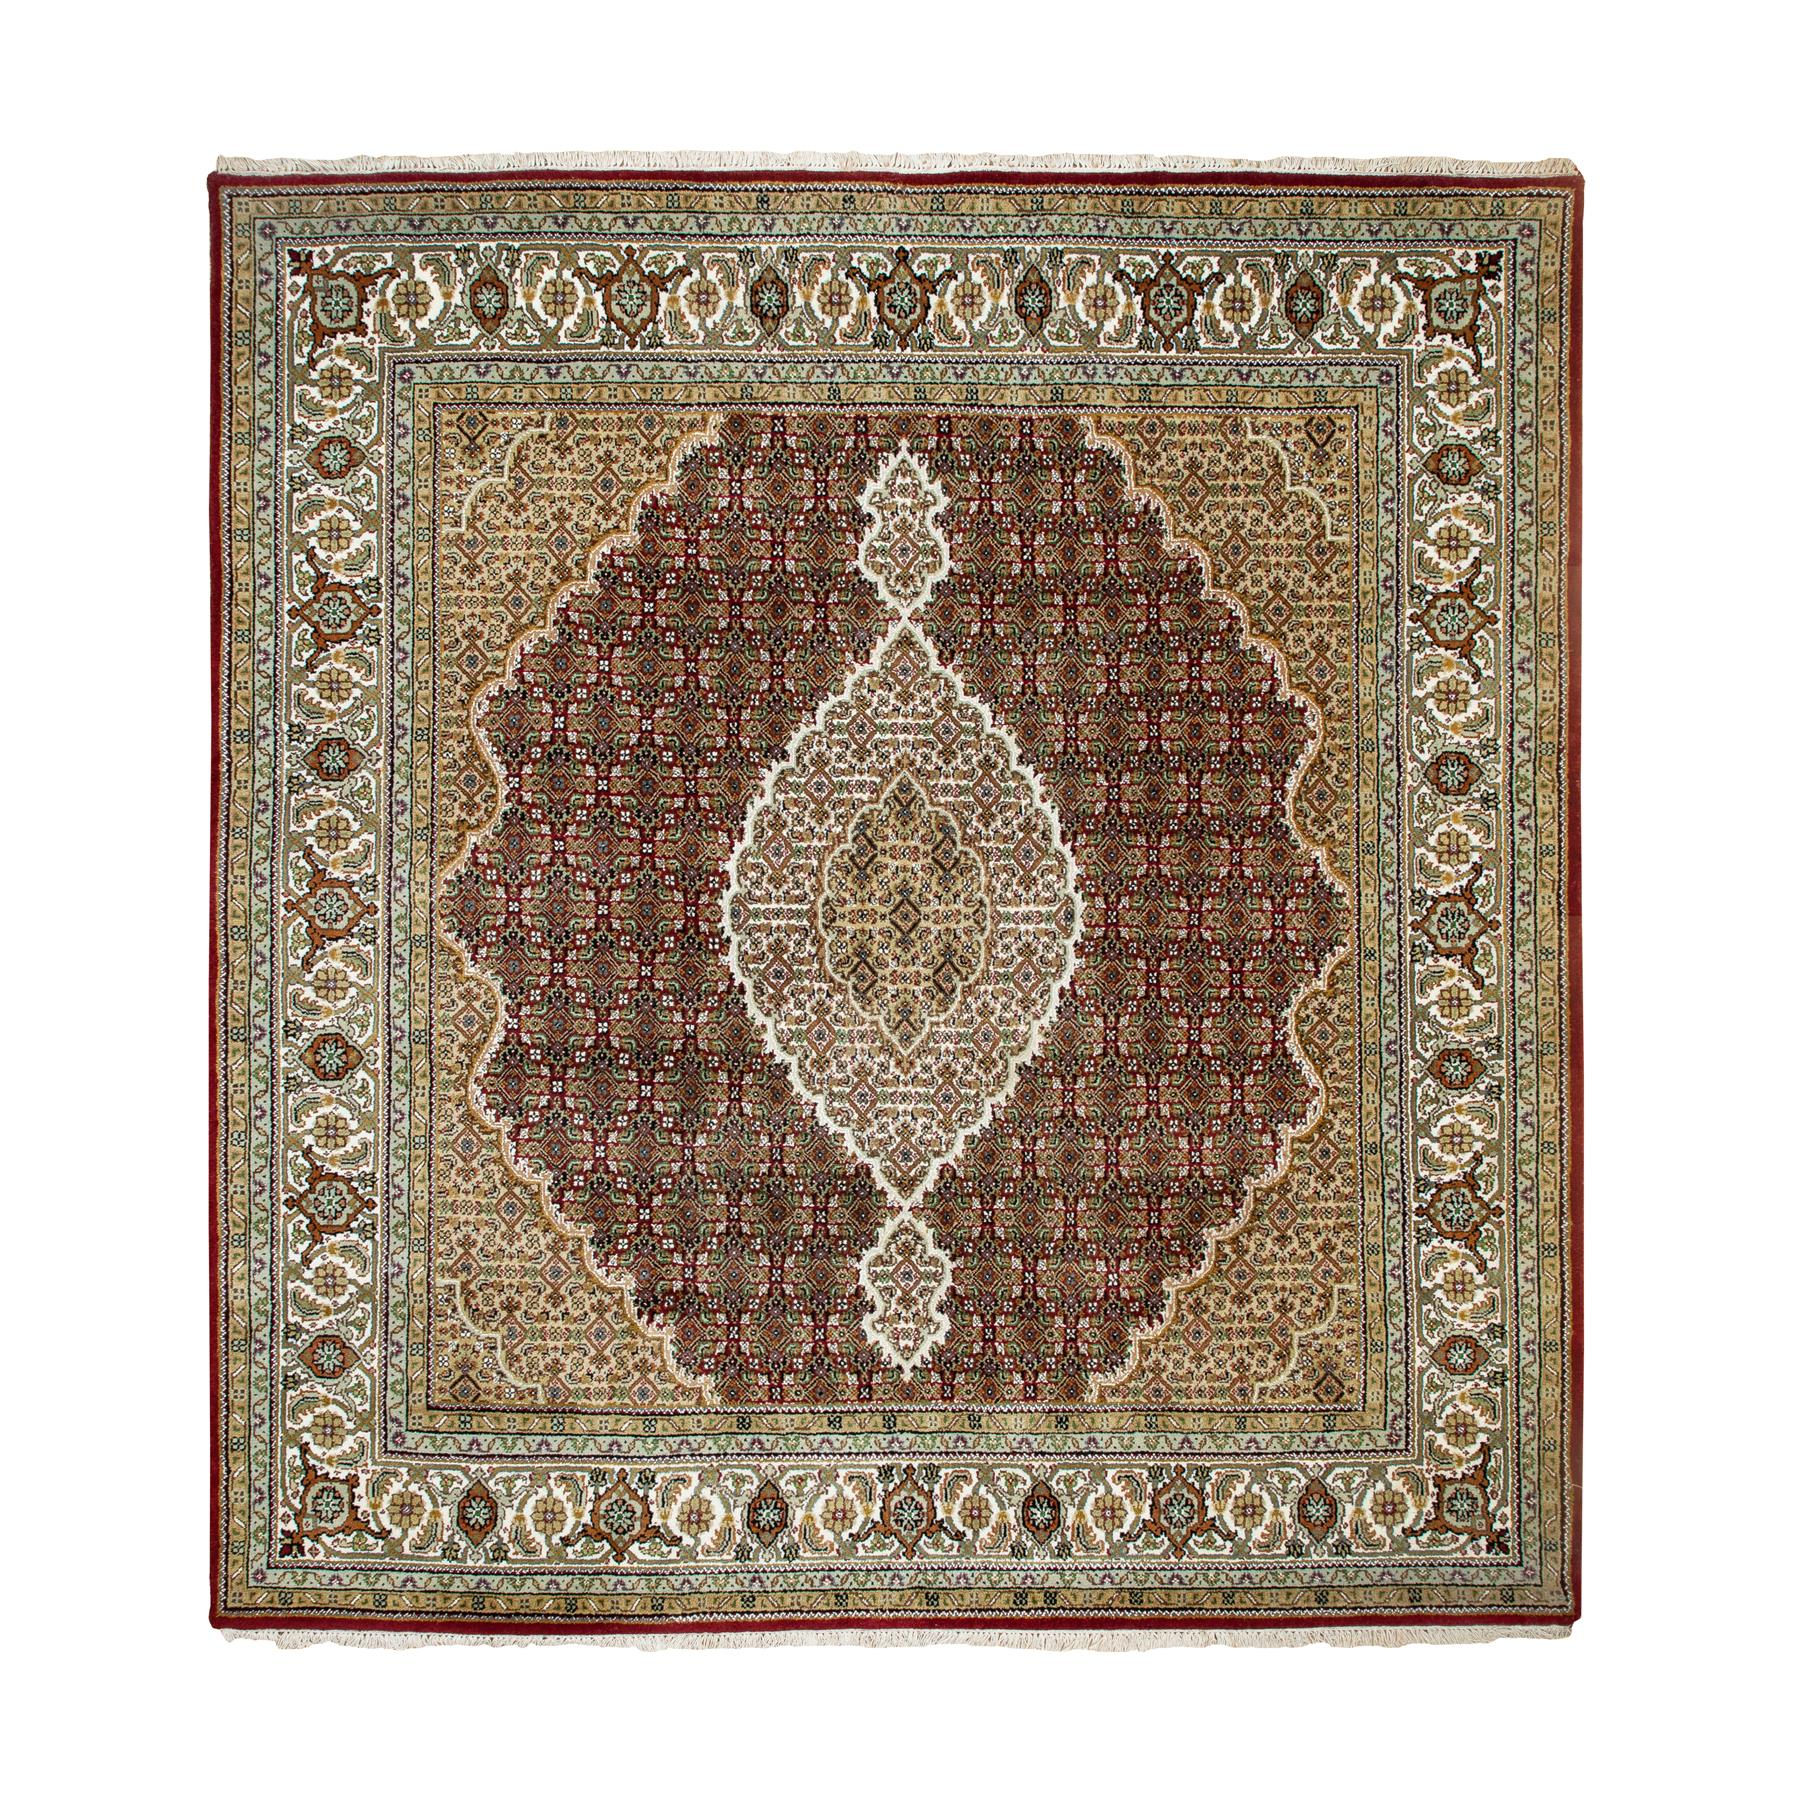 Pirniakan Collection Hand Knotted Red Rug No: 1117494